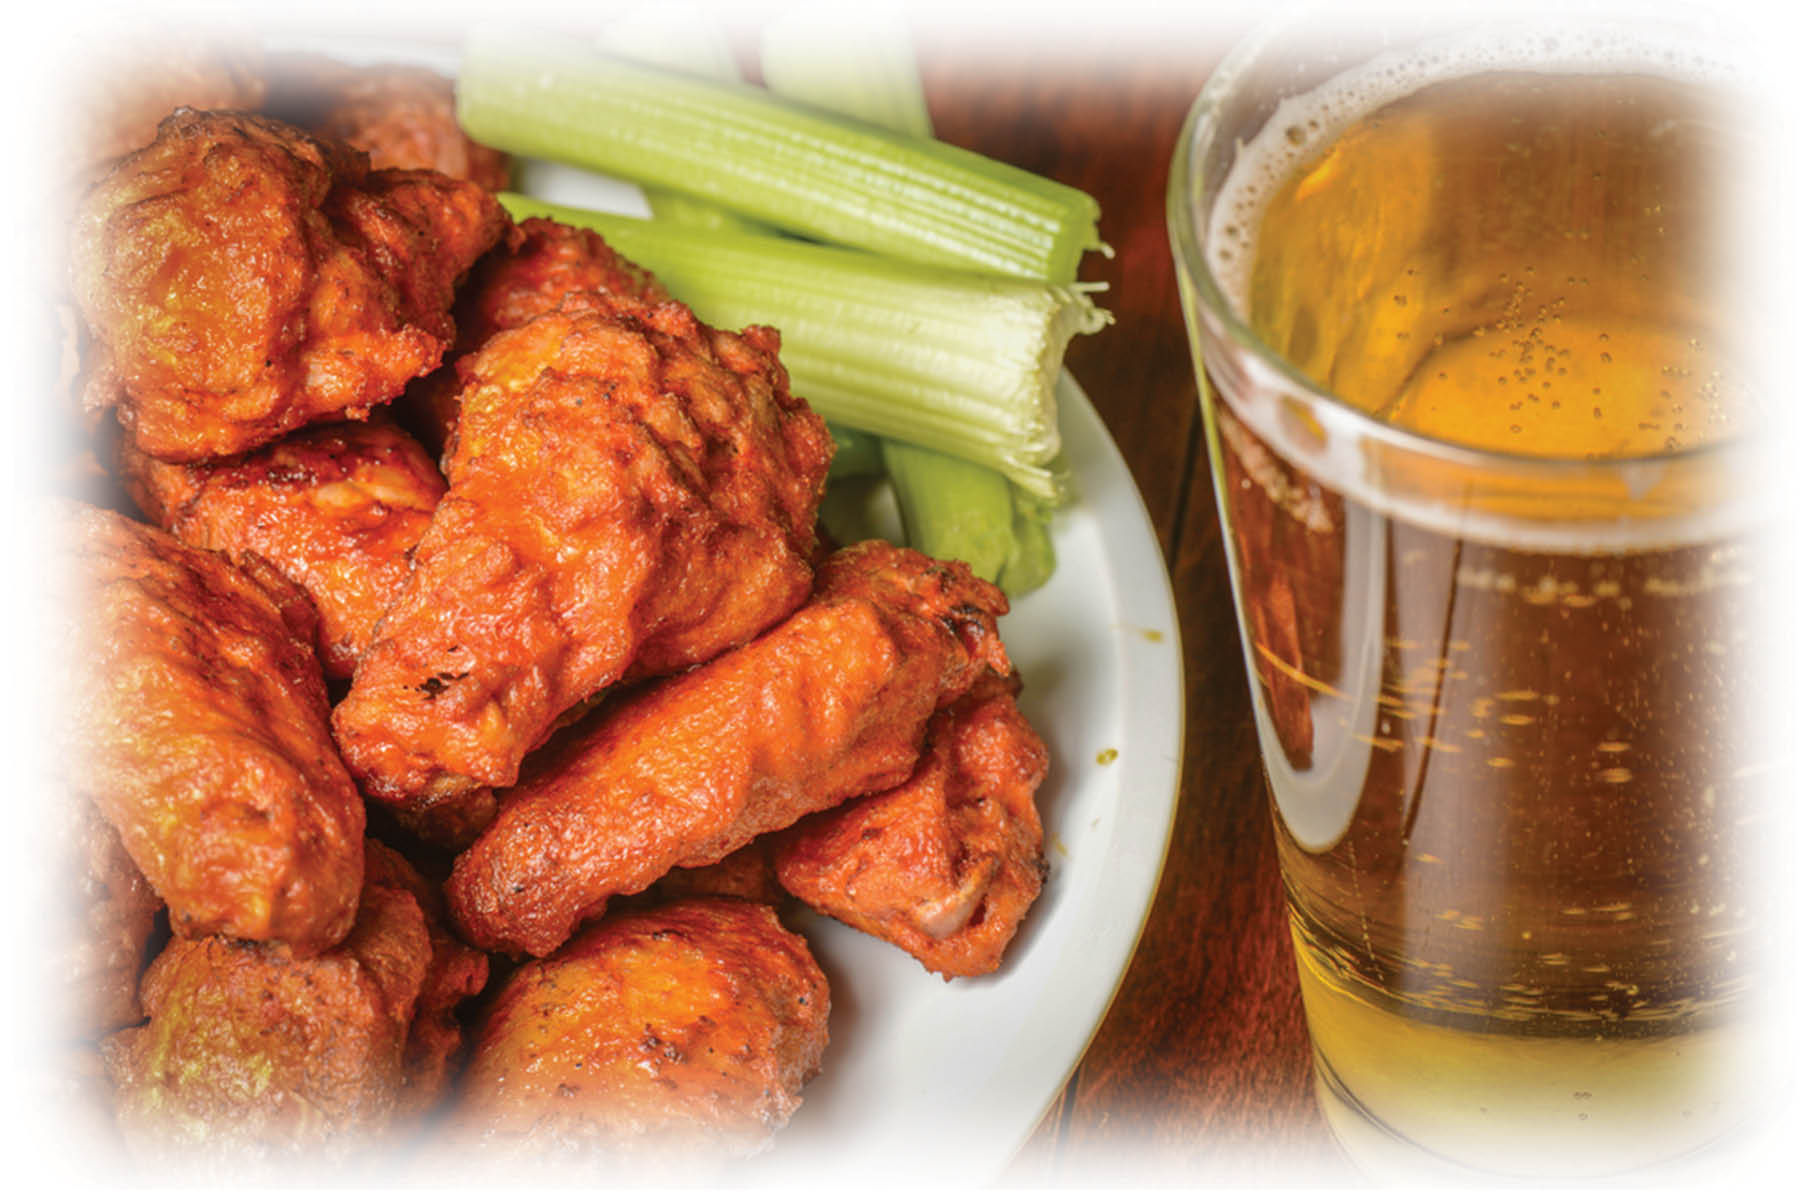 Heavenly Chicken and Ribs - Chicken Wings, Chicken Sandwiches,